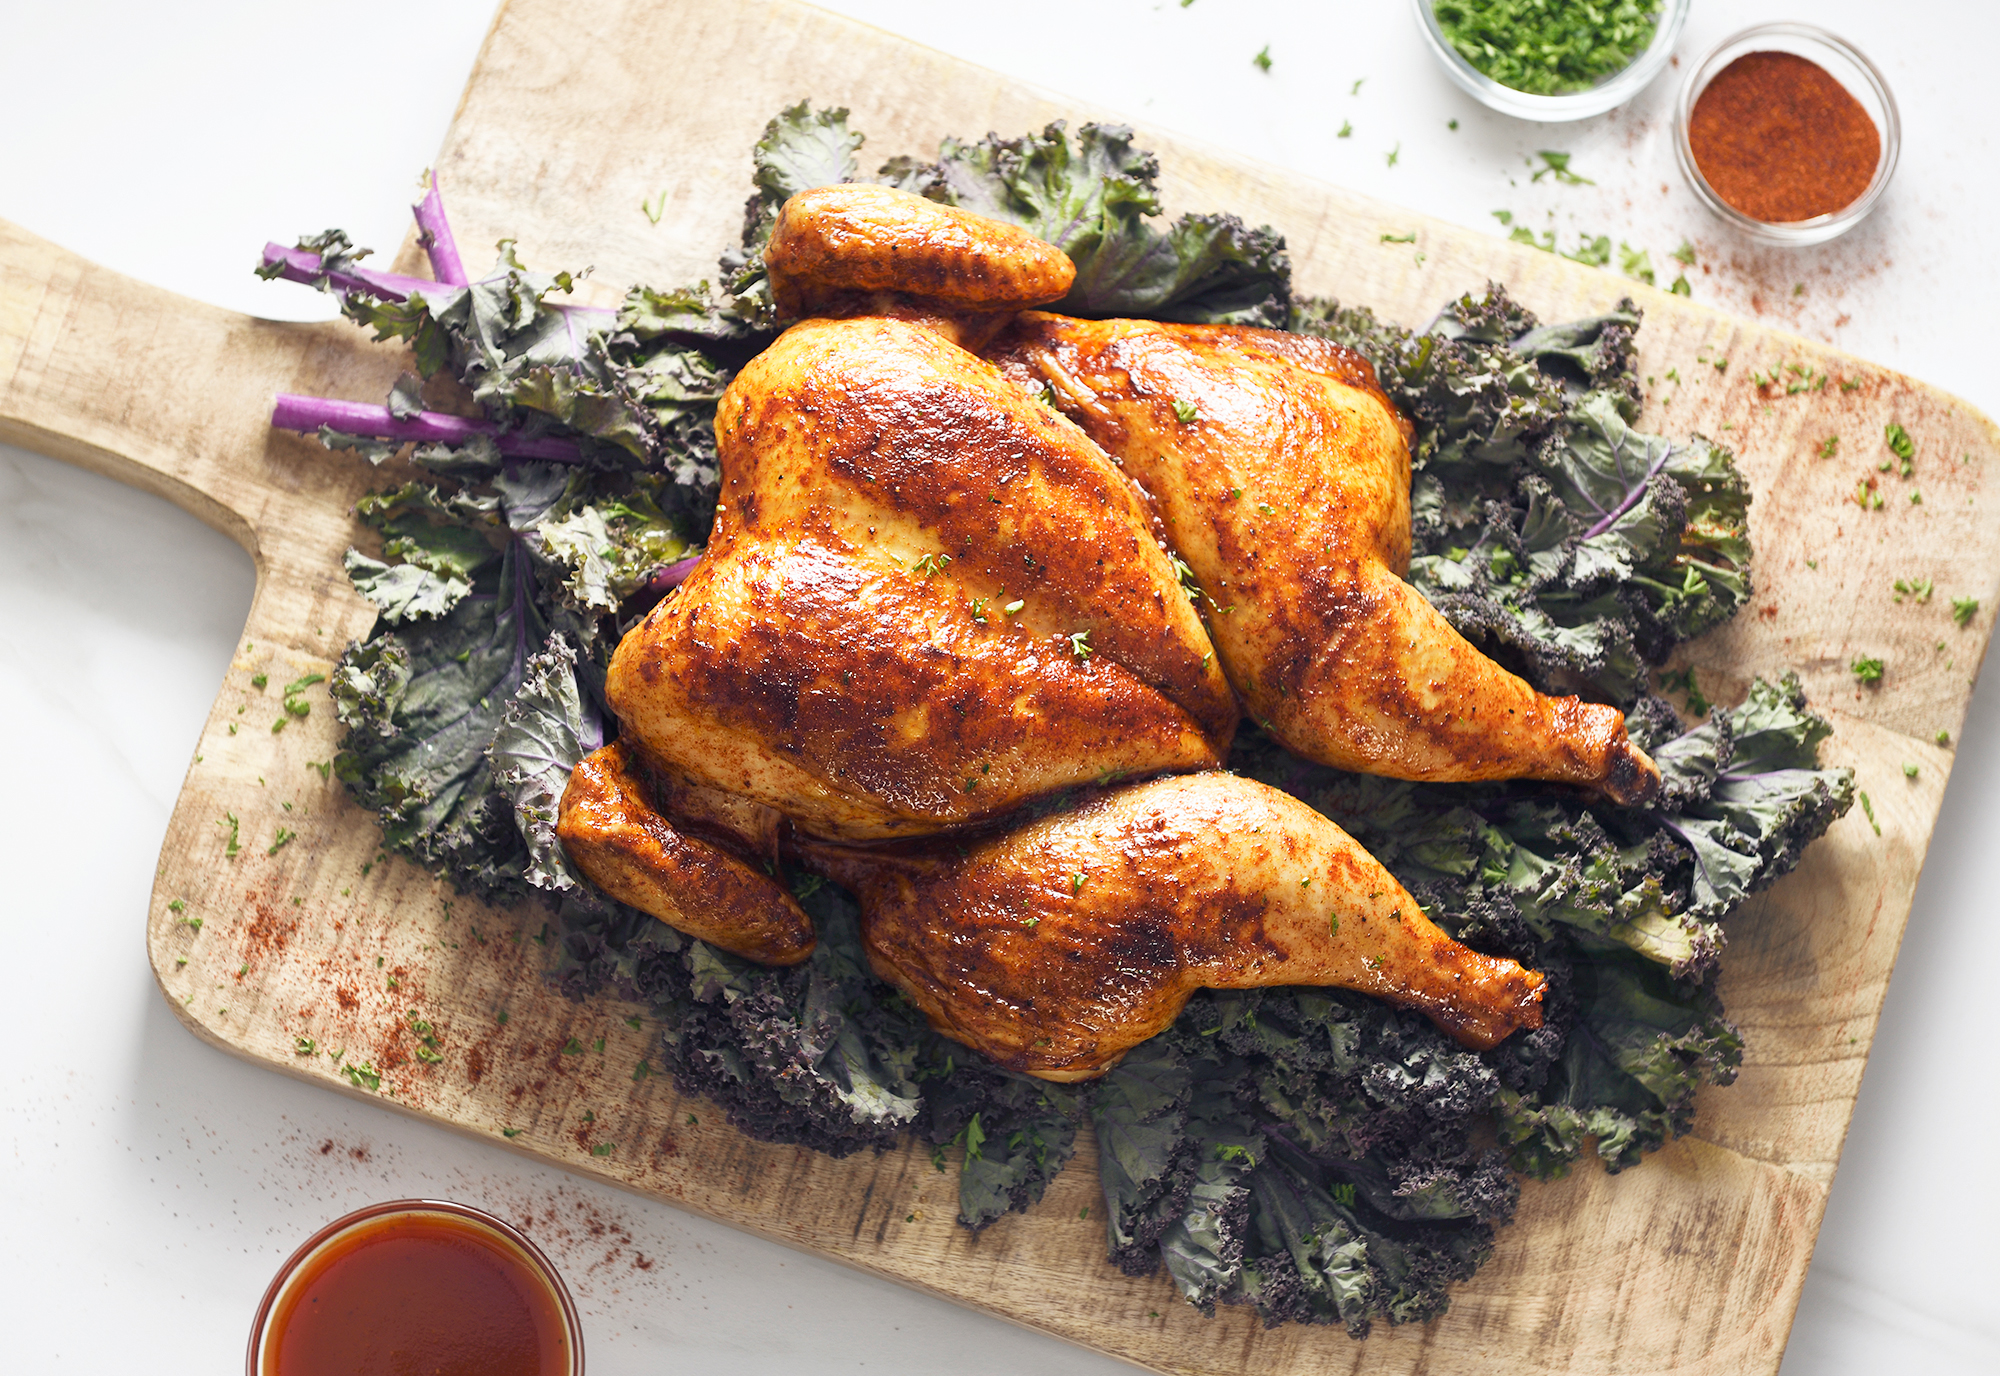 Rotisserie chicken on bed of Kale